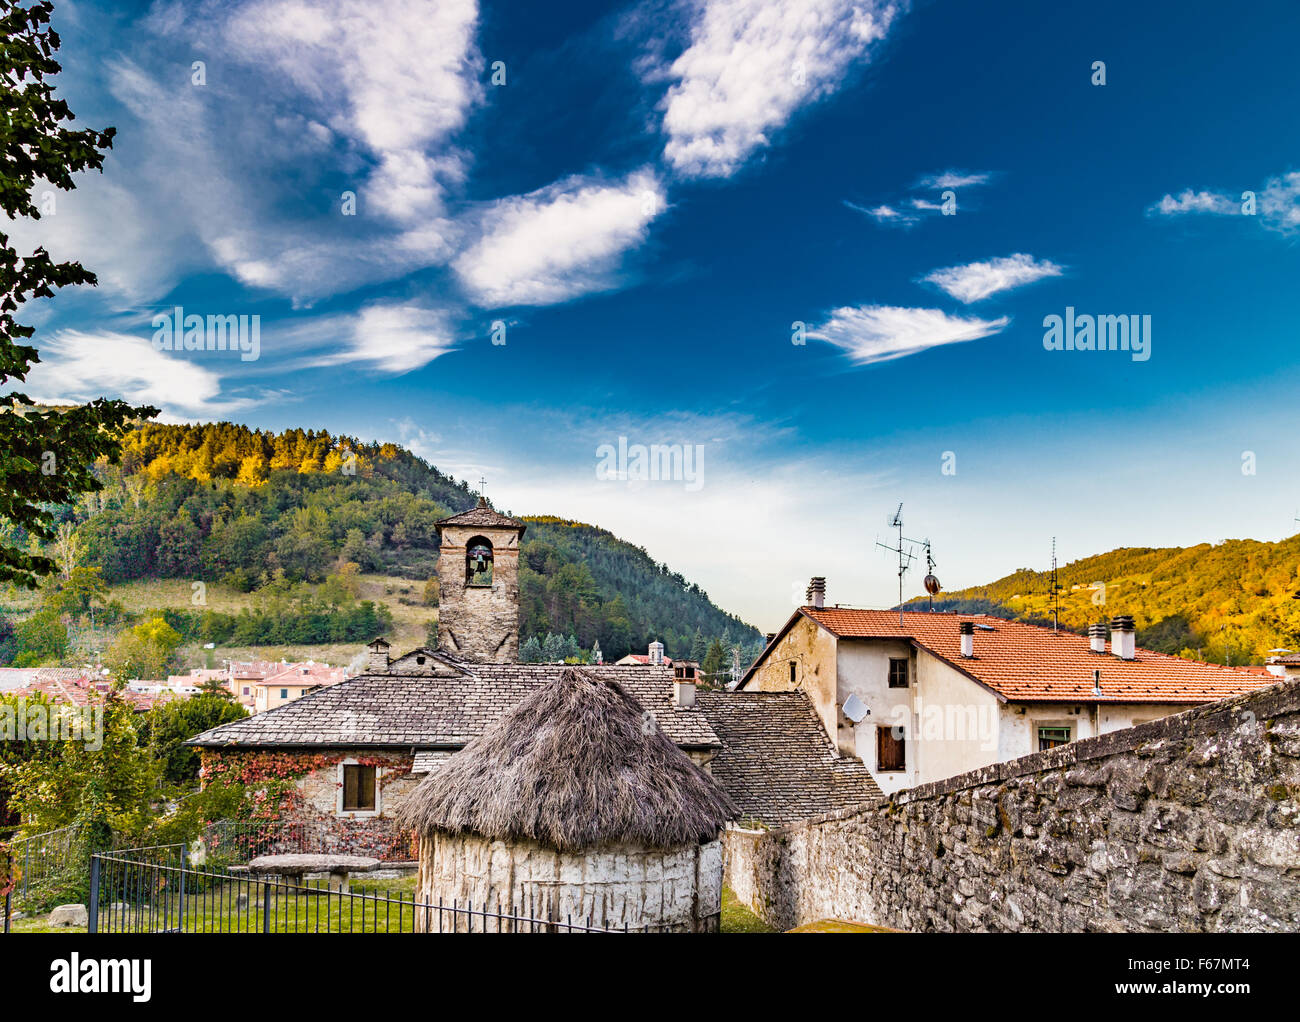 The Palace of the Captains and a straw hut in medieval mountain village in Tuscany characterized by houses with Stock Photo